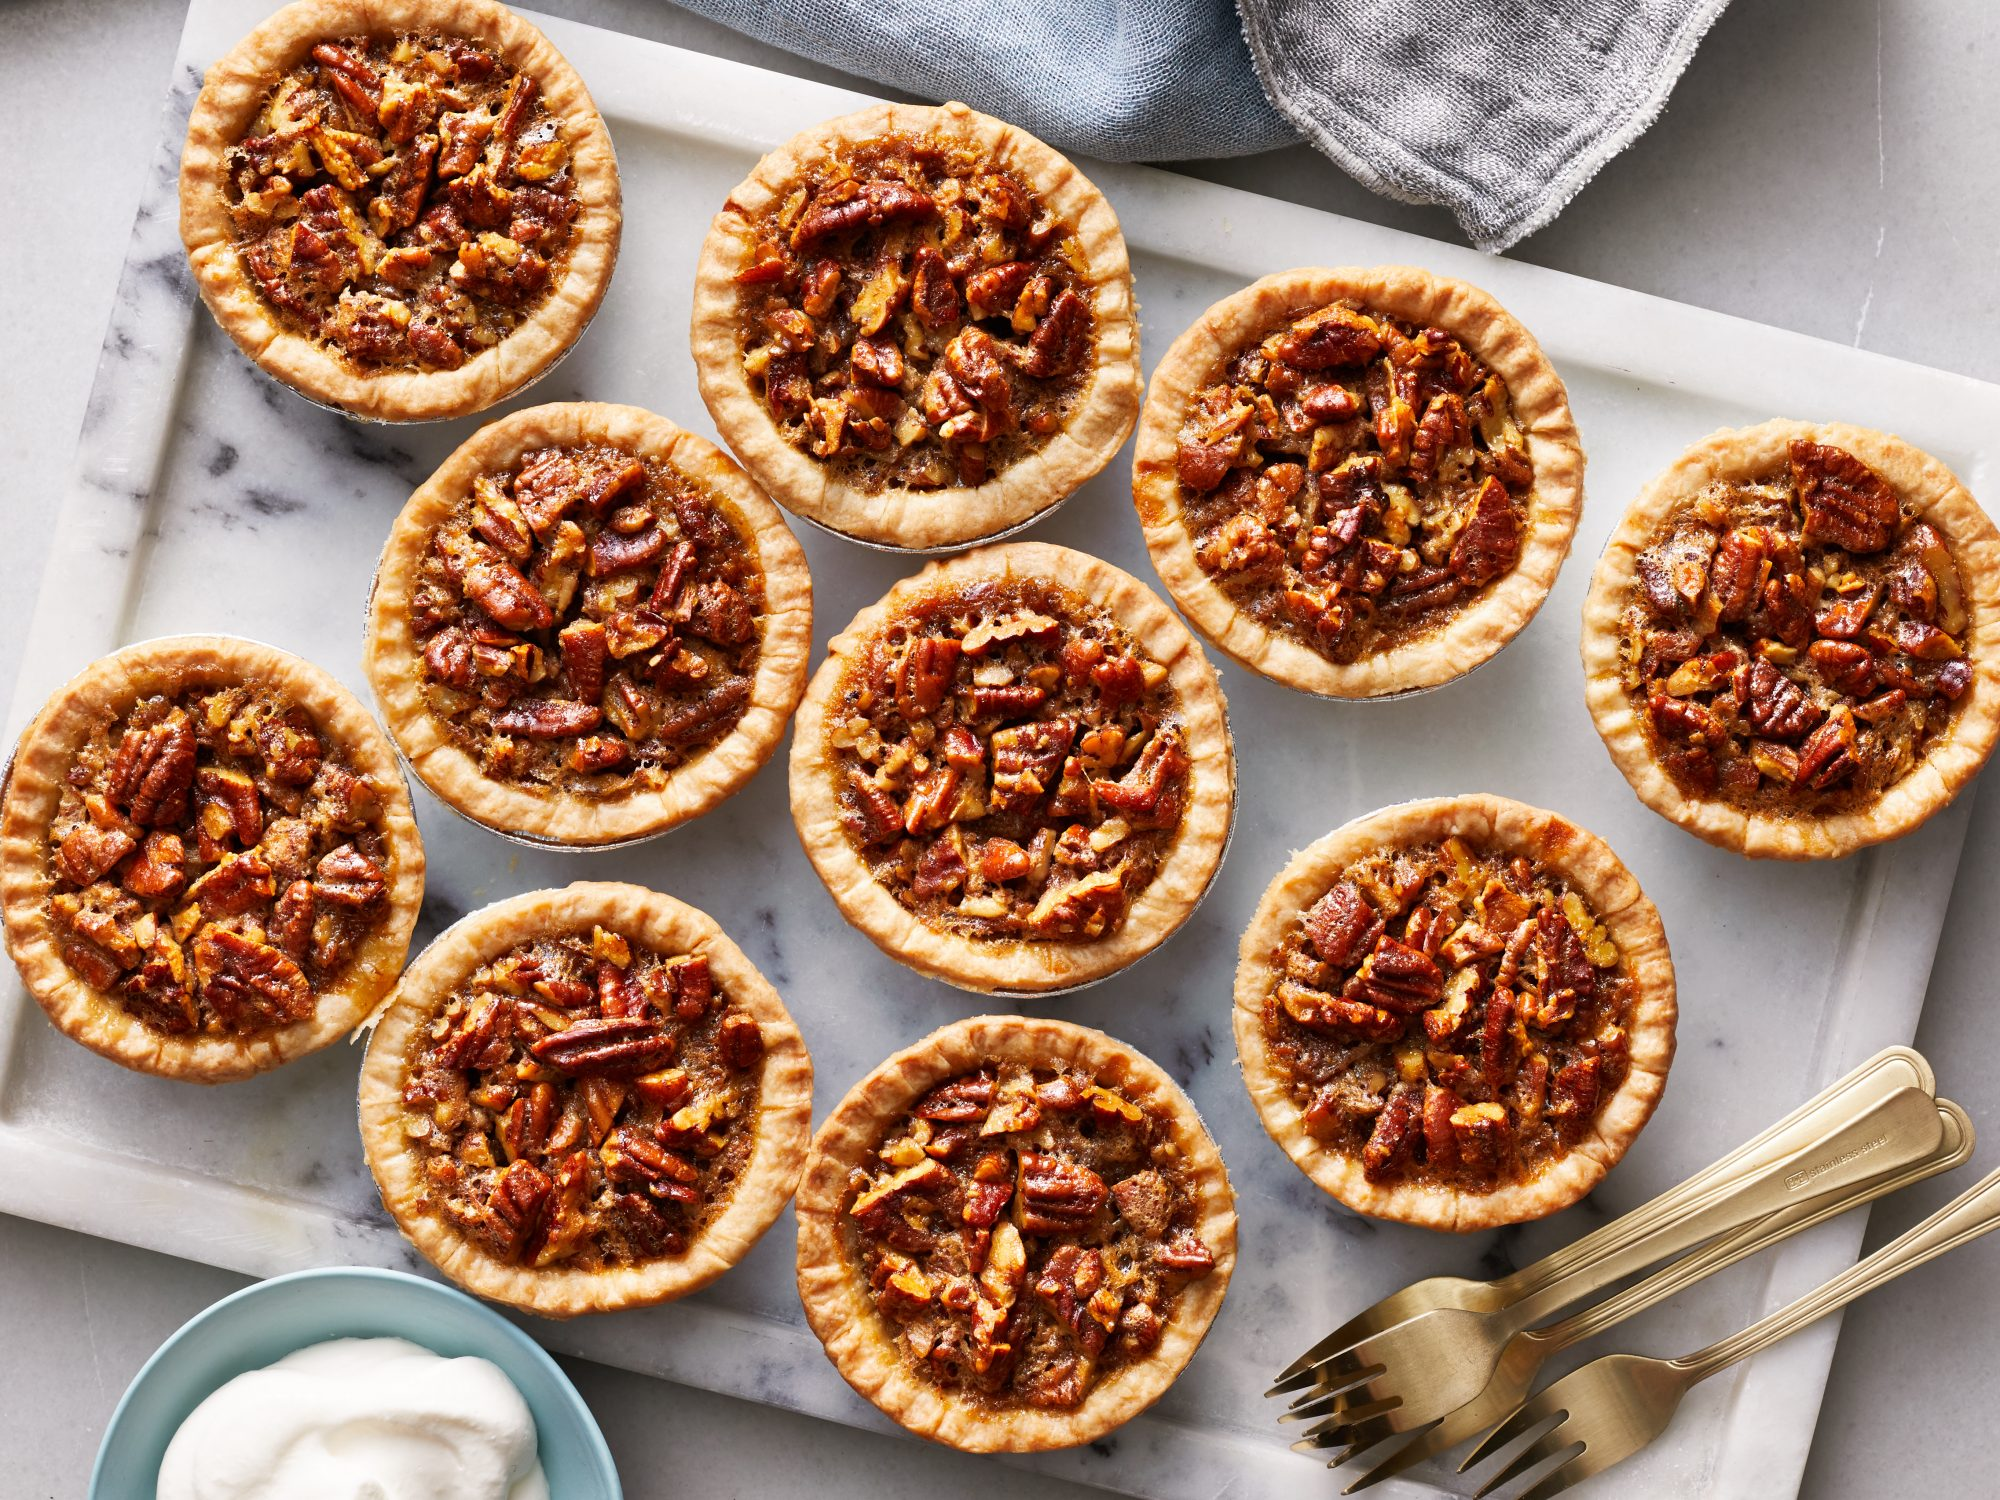 mr - Mini Pecan Pies reshoot